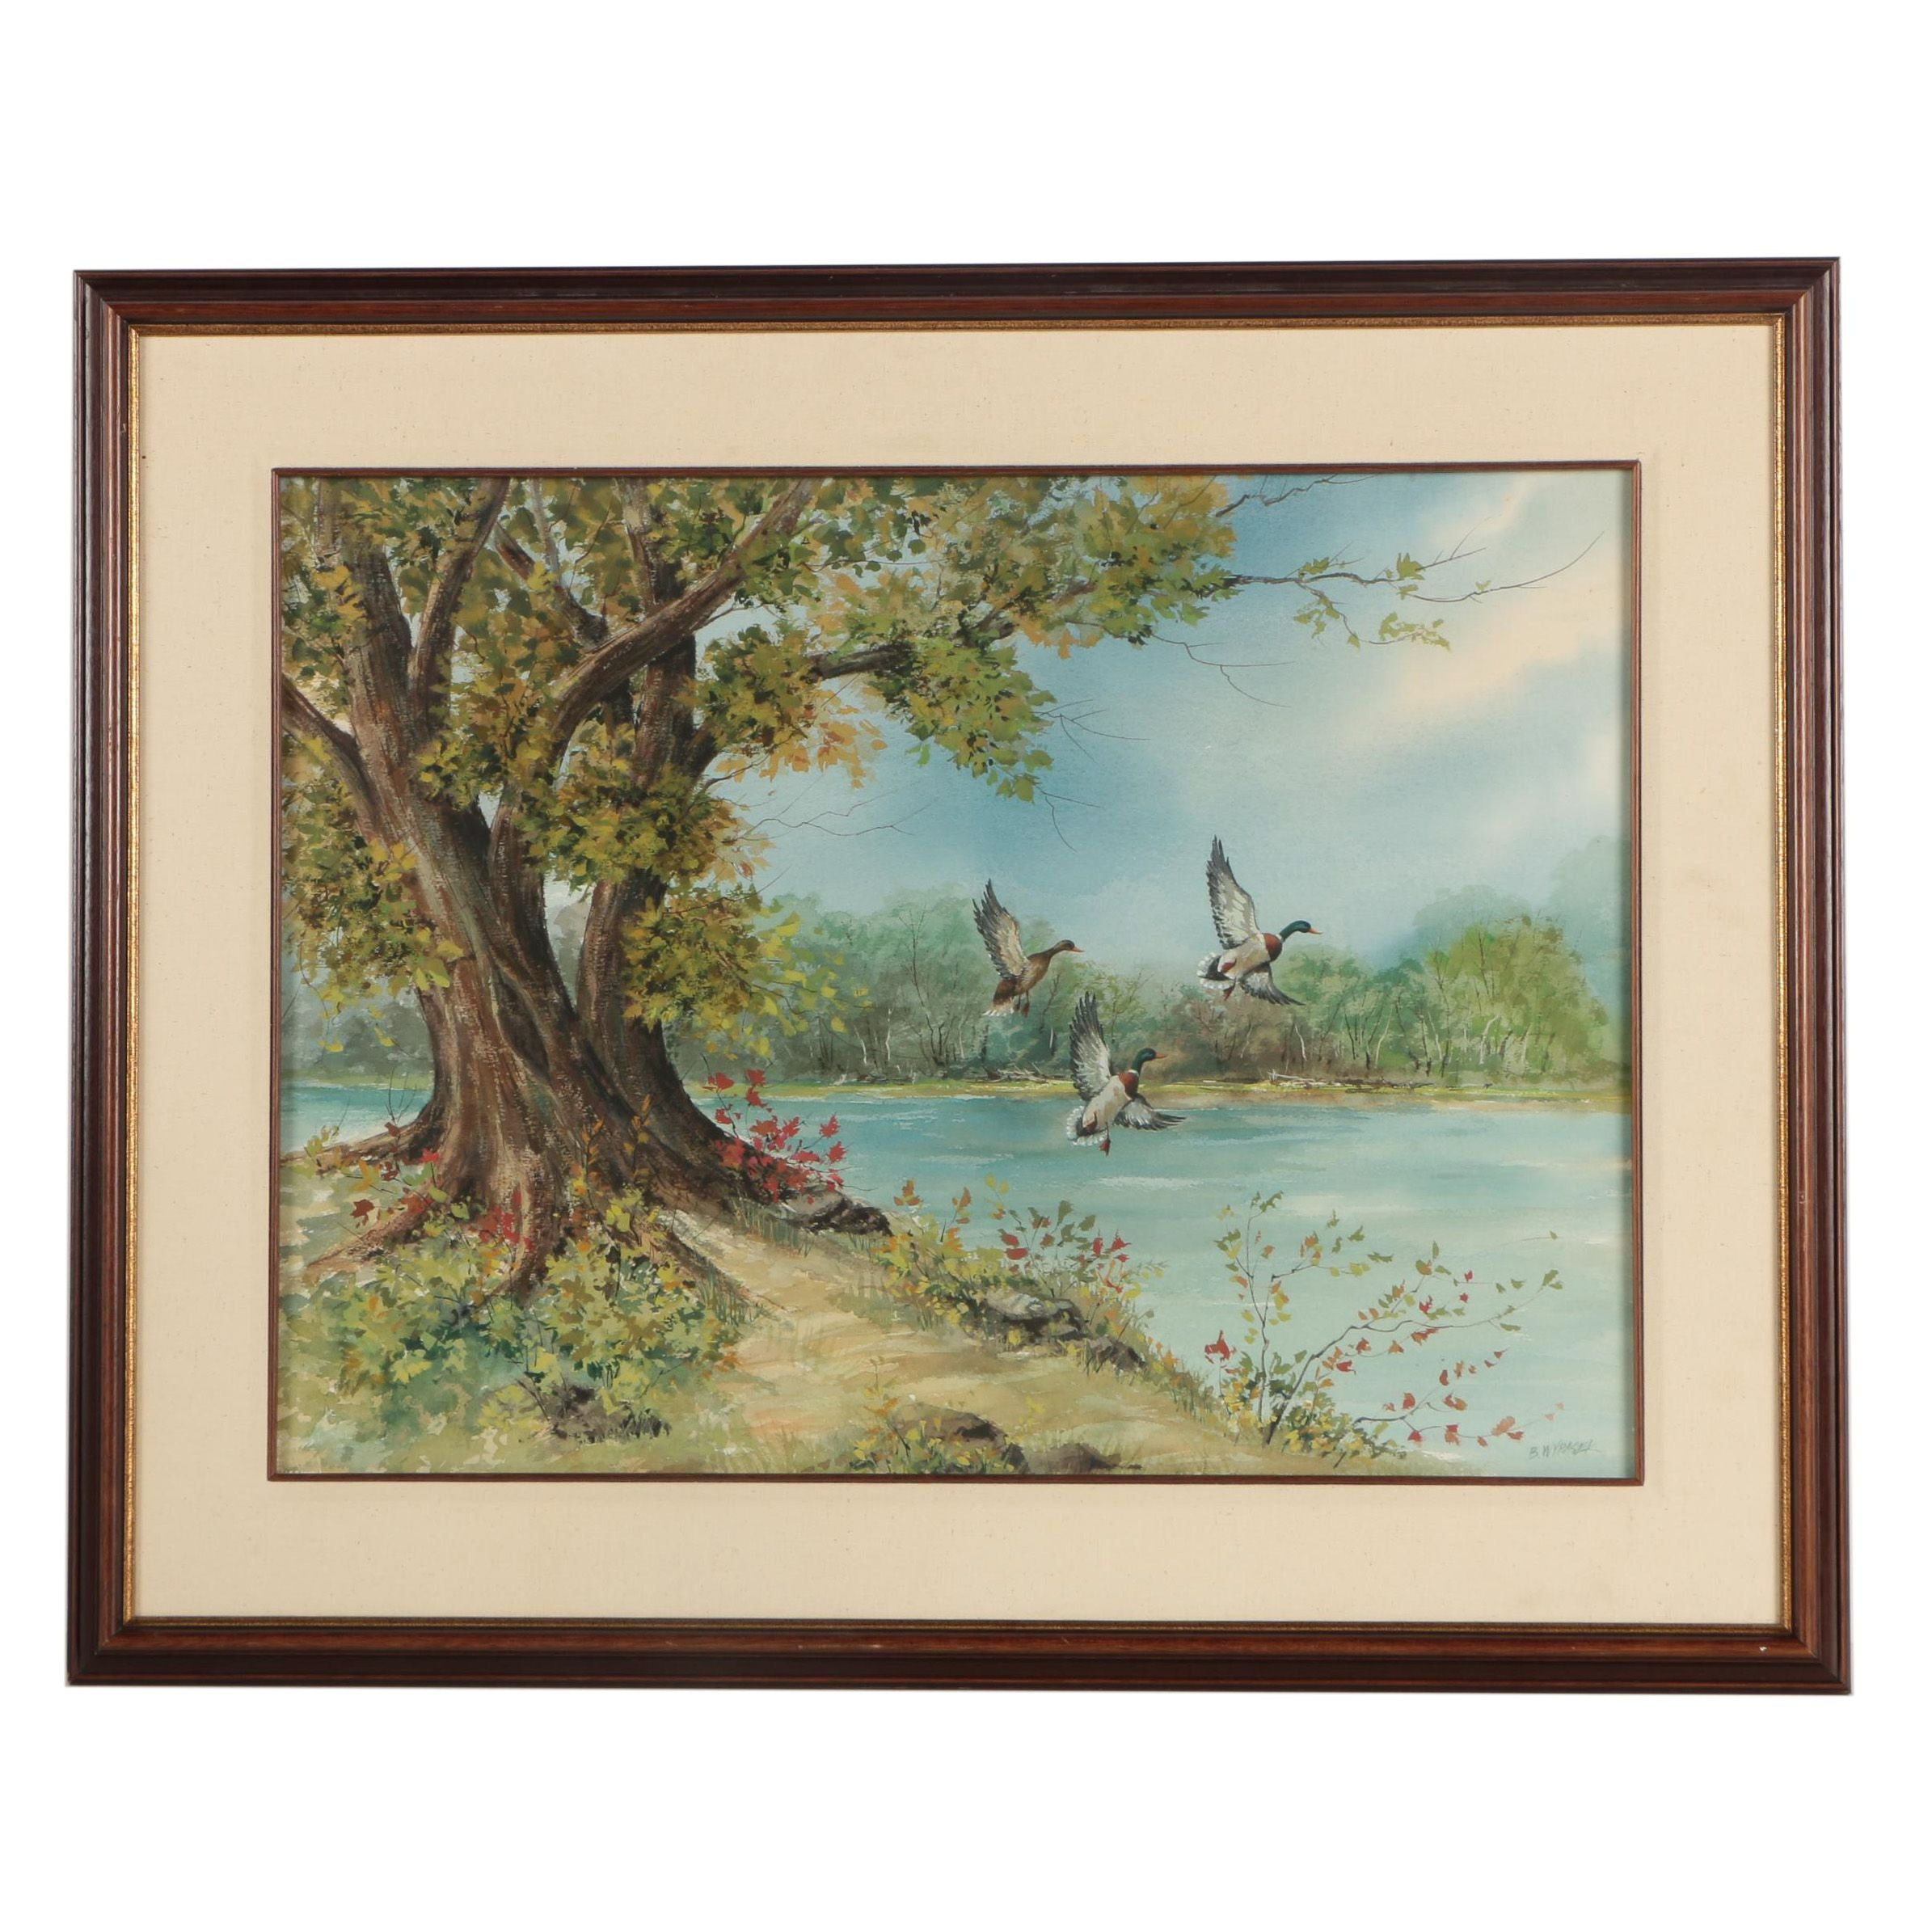 B. Wypasek Watercolor and Gouache Painting of Ducks on the Lake